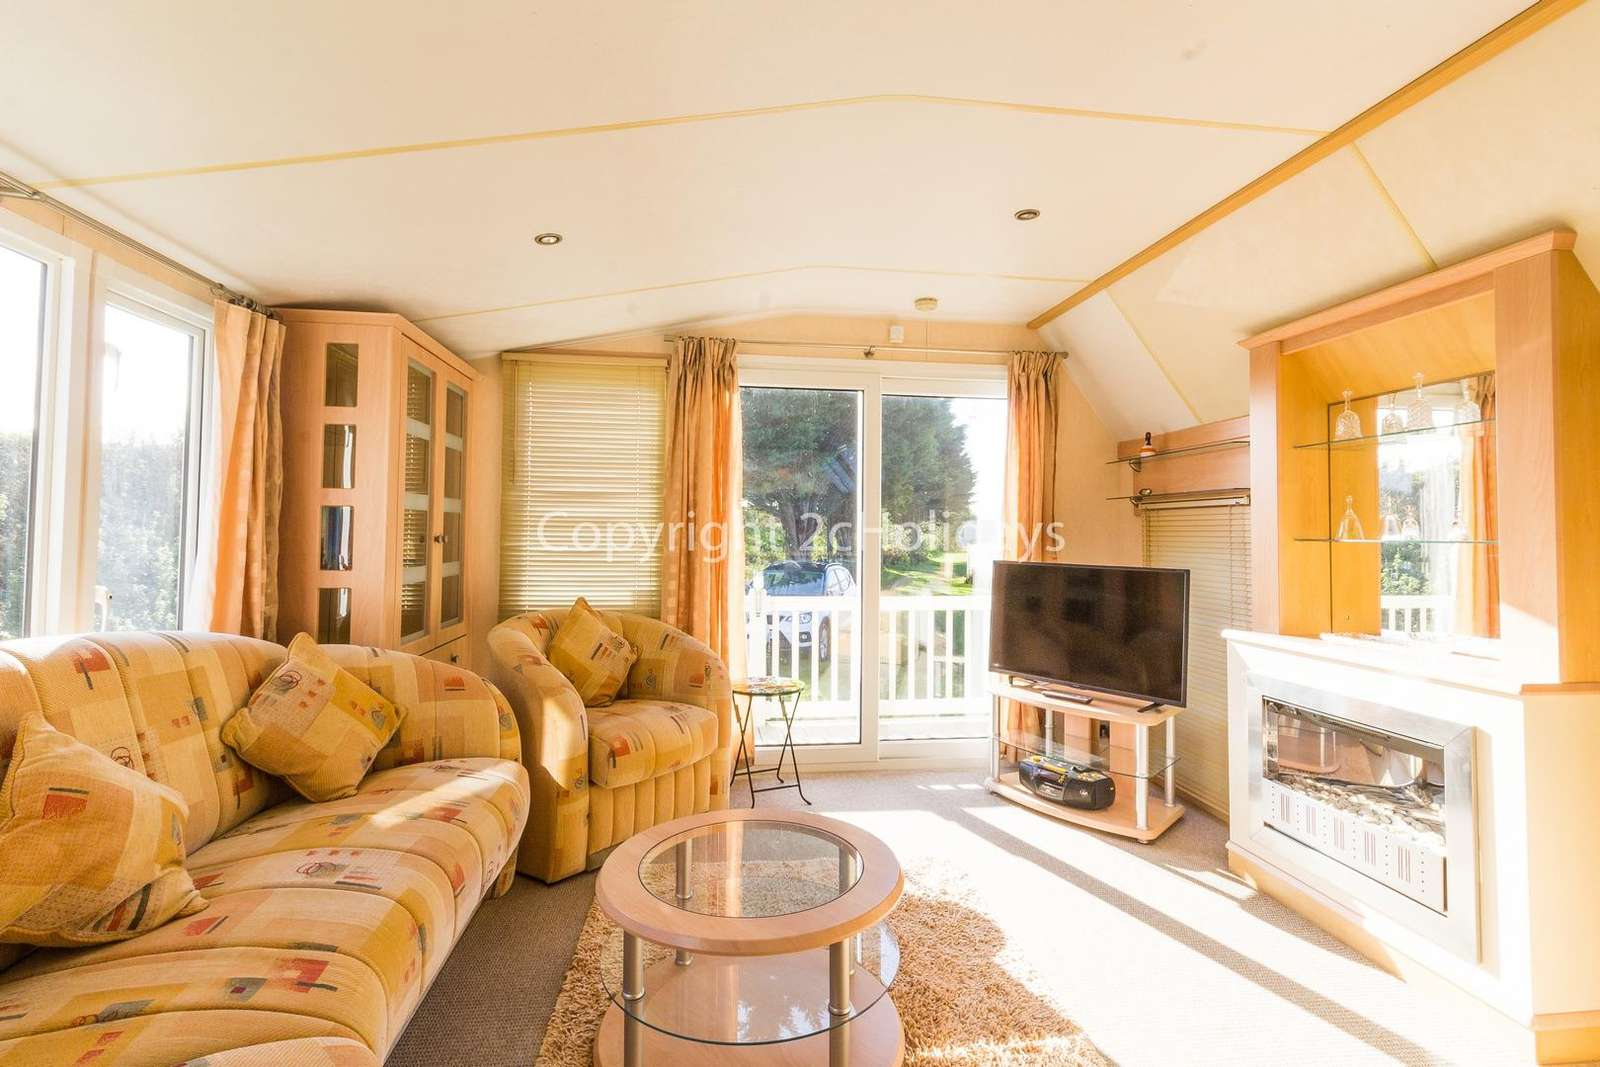 Beautiful sliding doors leading to the outside decking area, perfect for families!